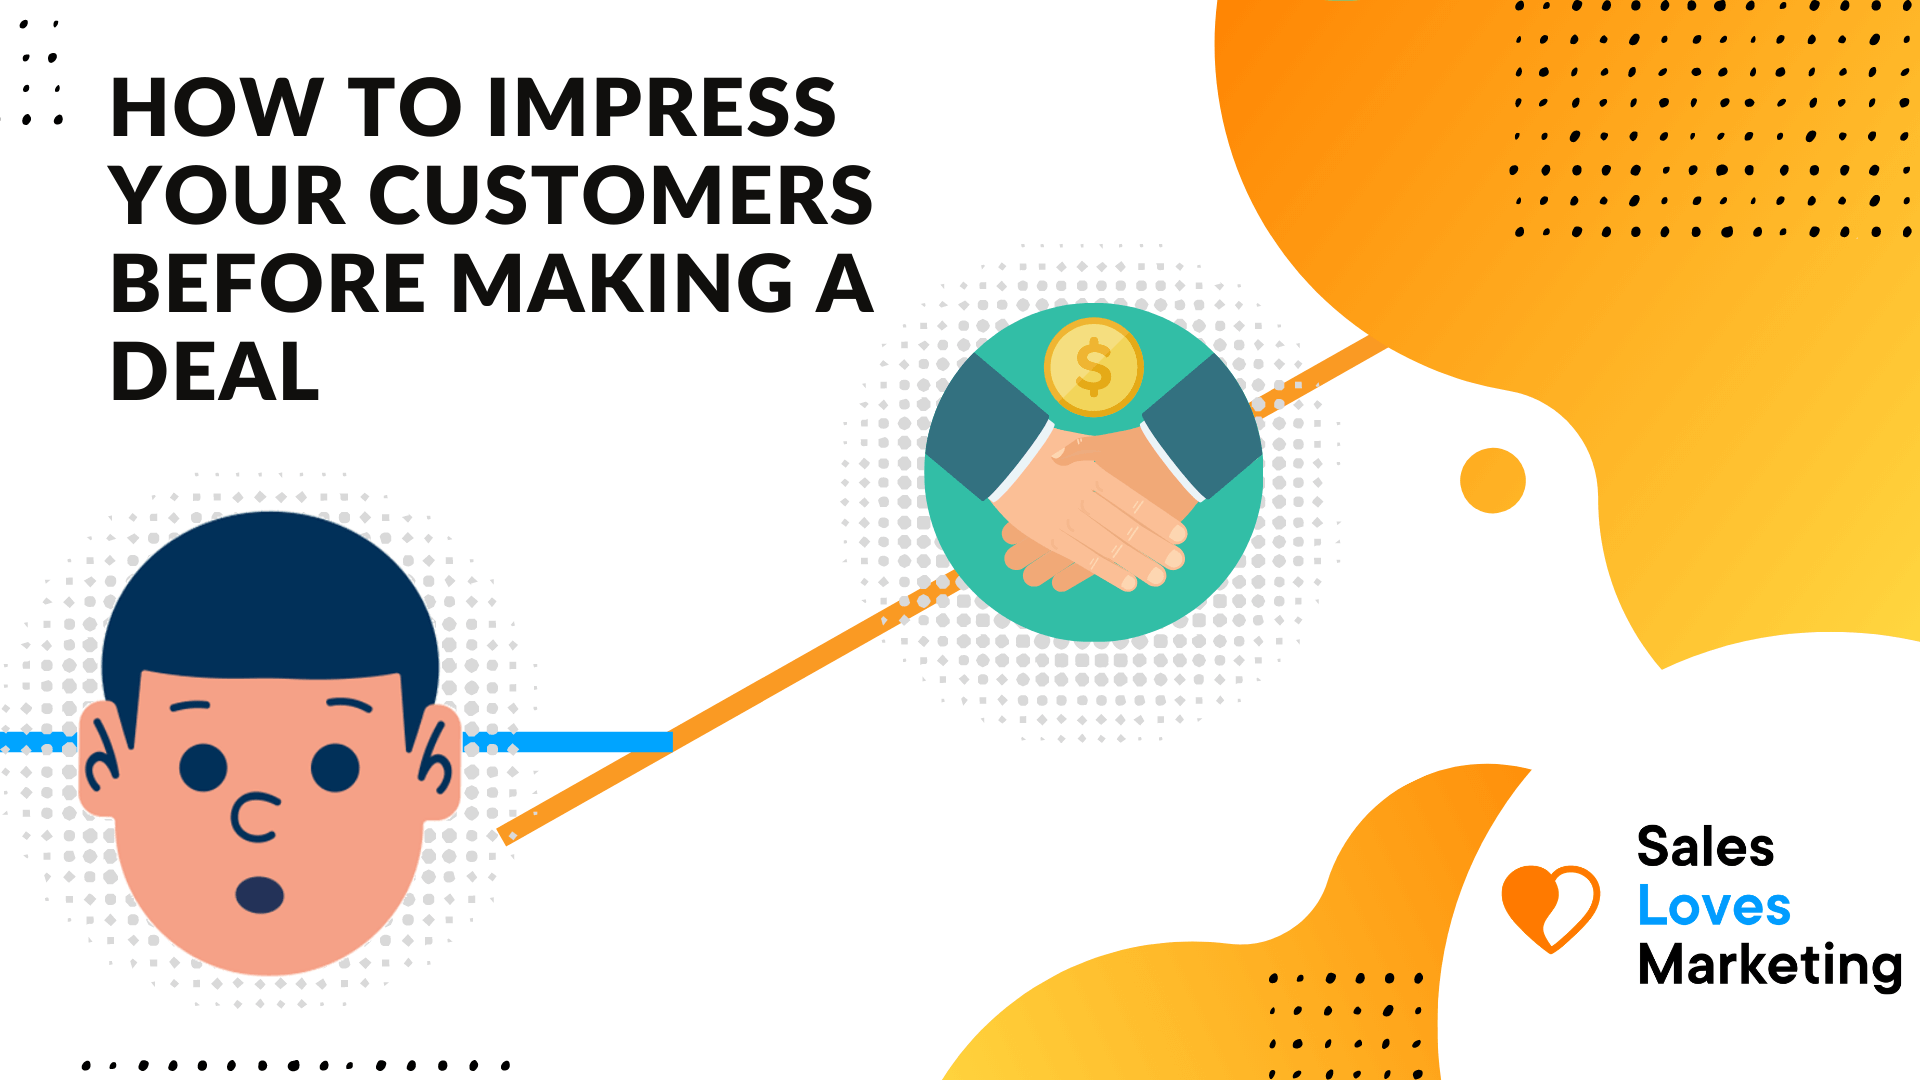 How to impress your customers before making a deal.